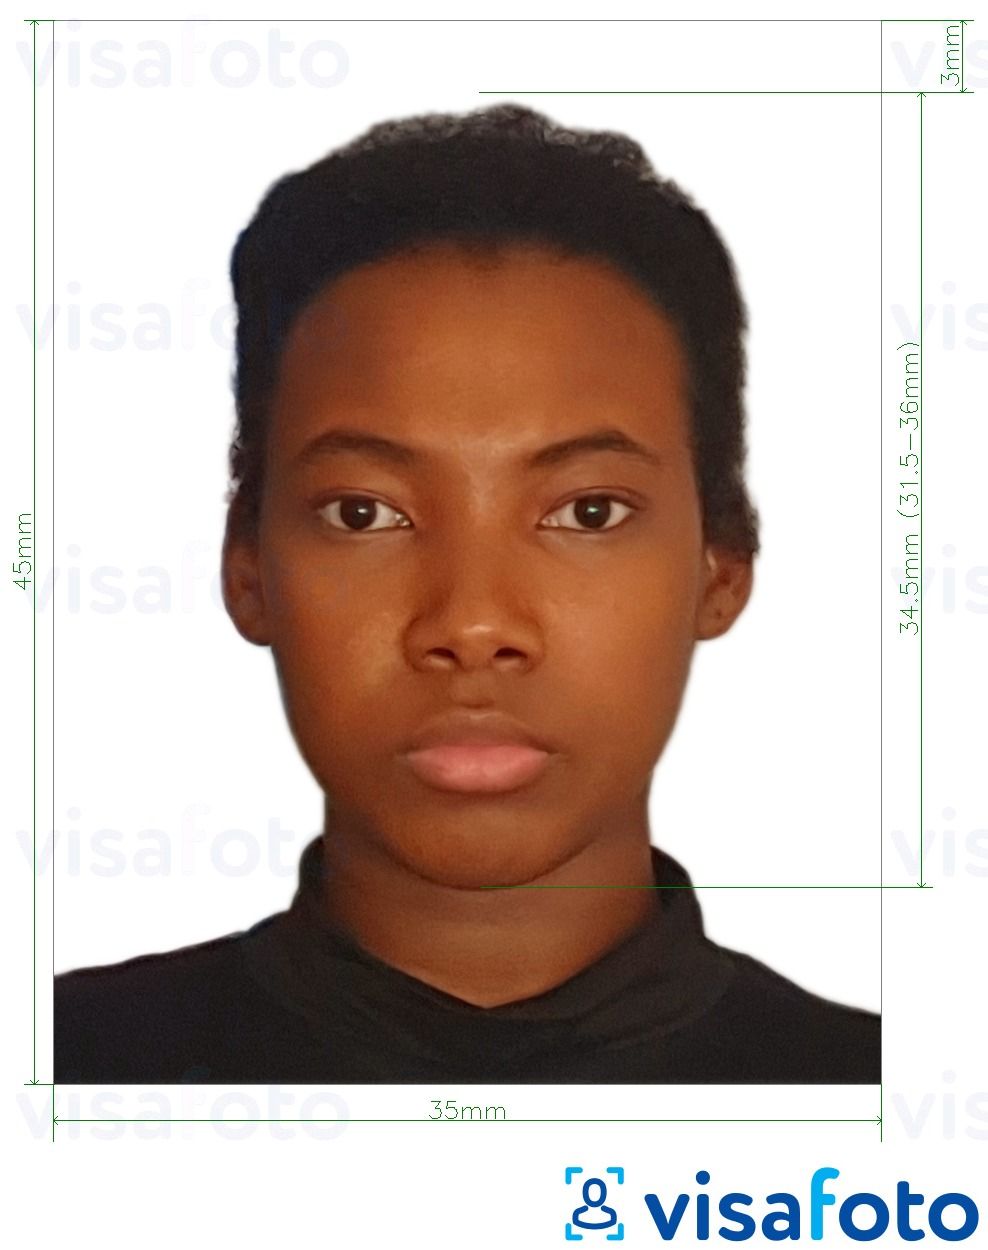 Example of photo for Benin visa 3.5x4.5 cm (35x45 mm) with exact size specification